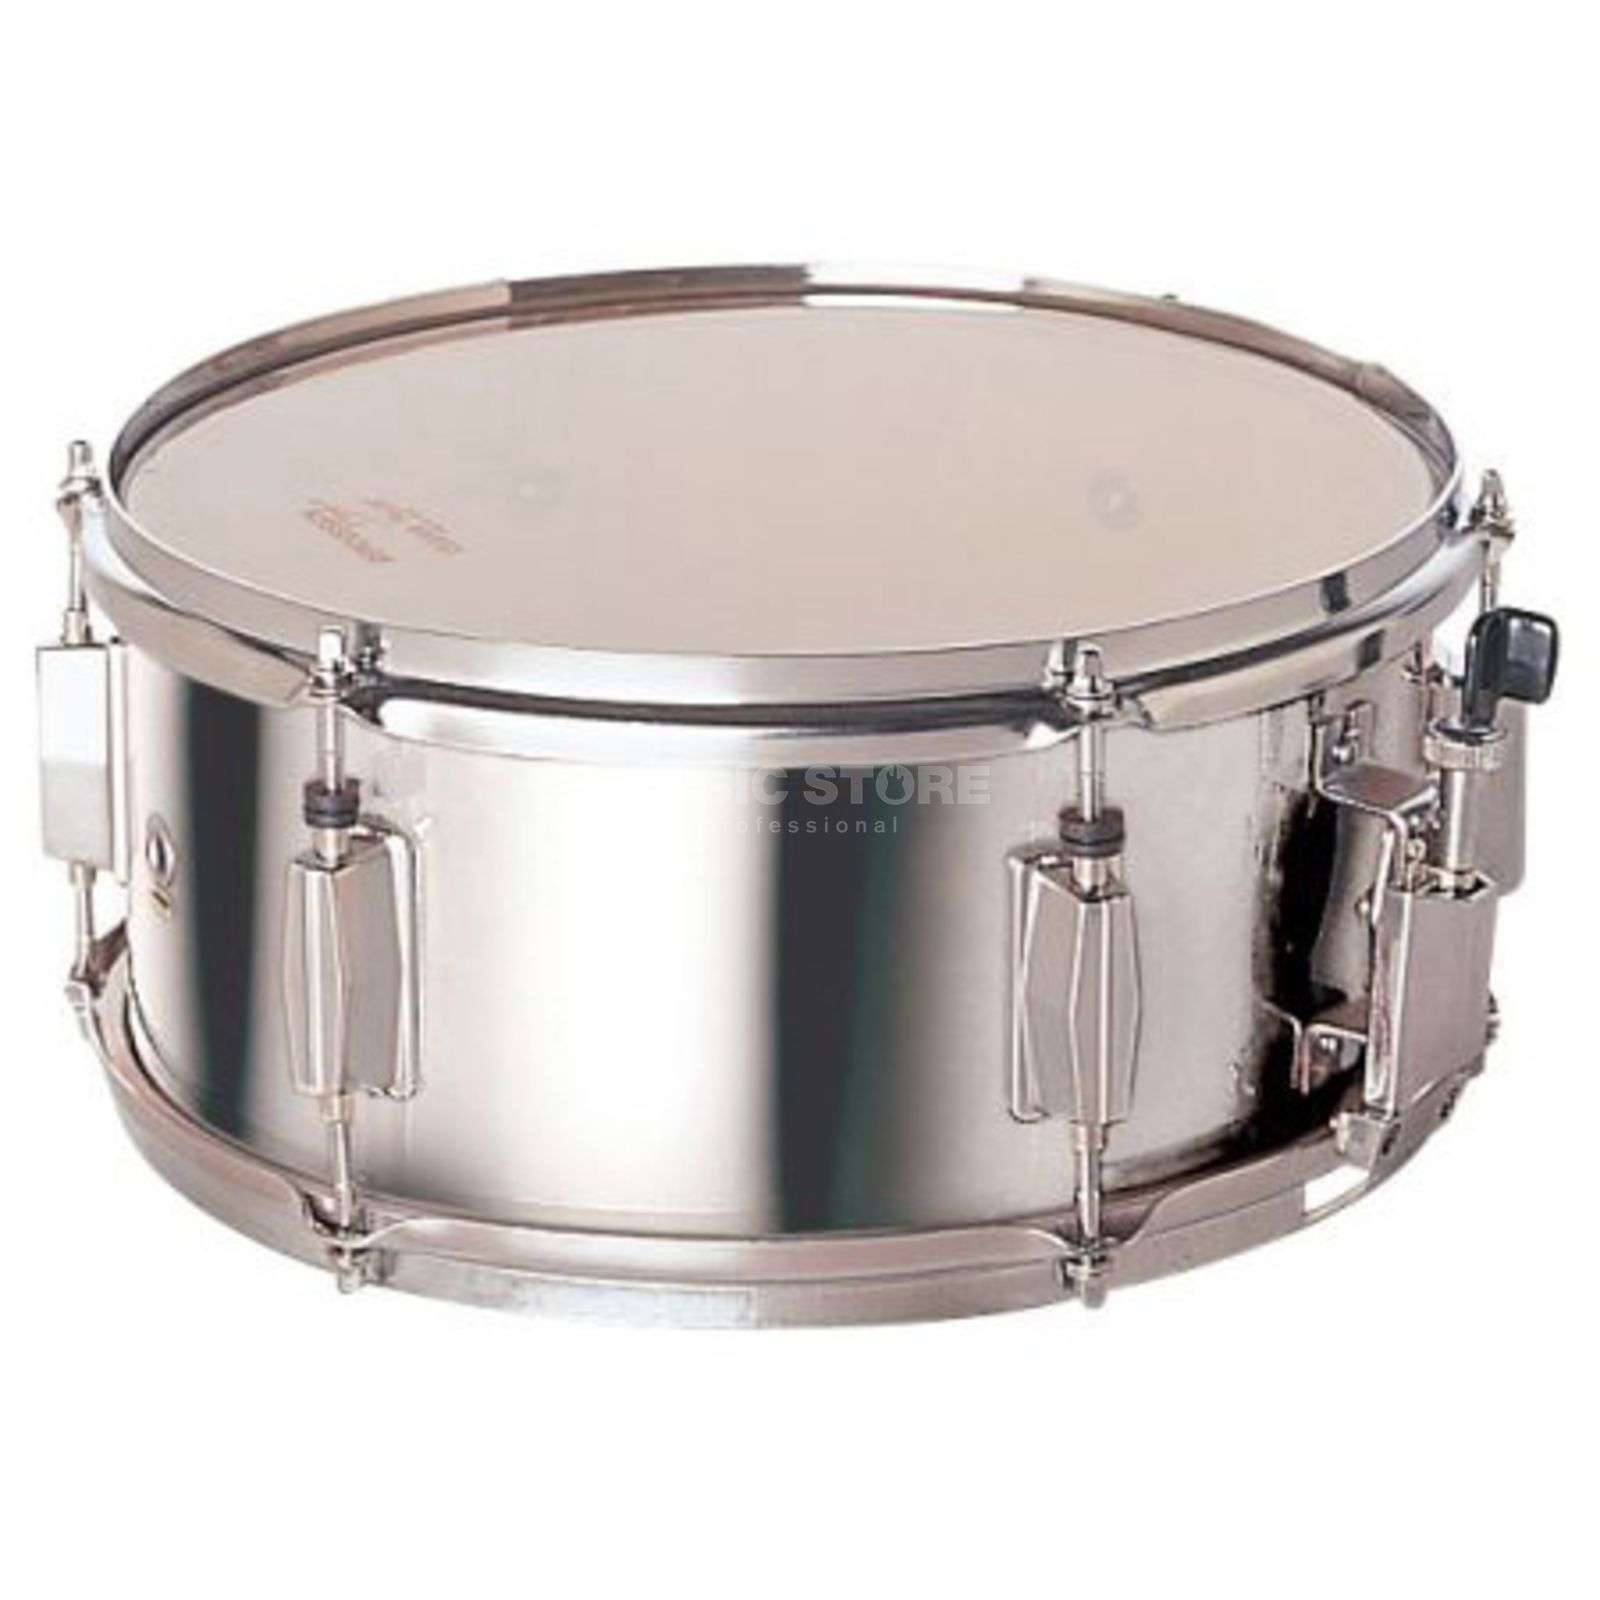 "Percussion Plus PP784 Snare 12"" #Mirror Finish, inkl. Sticks Produktbild"